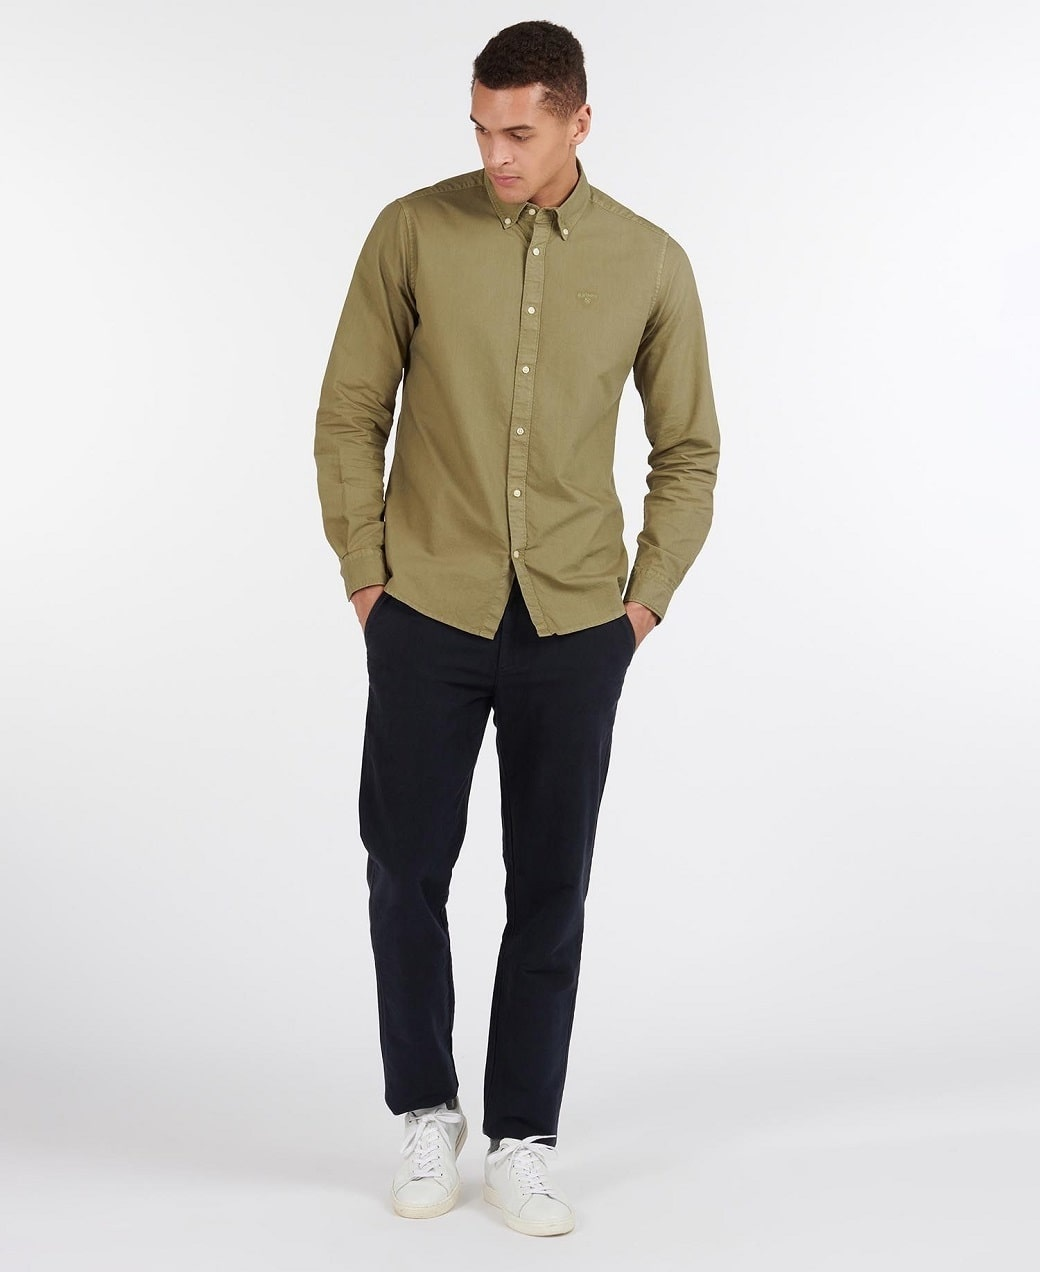 Barbour Oxford 13 Tailored Shirt Olive-3